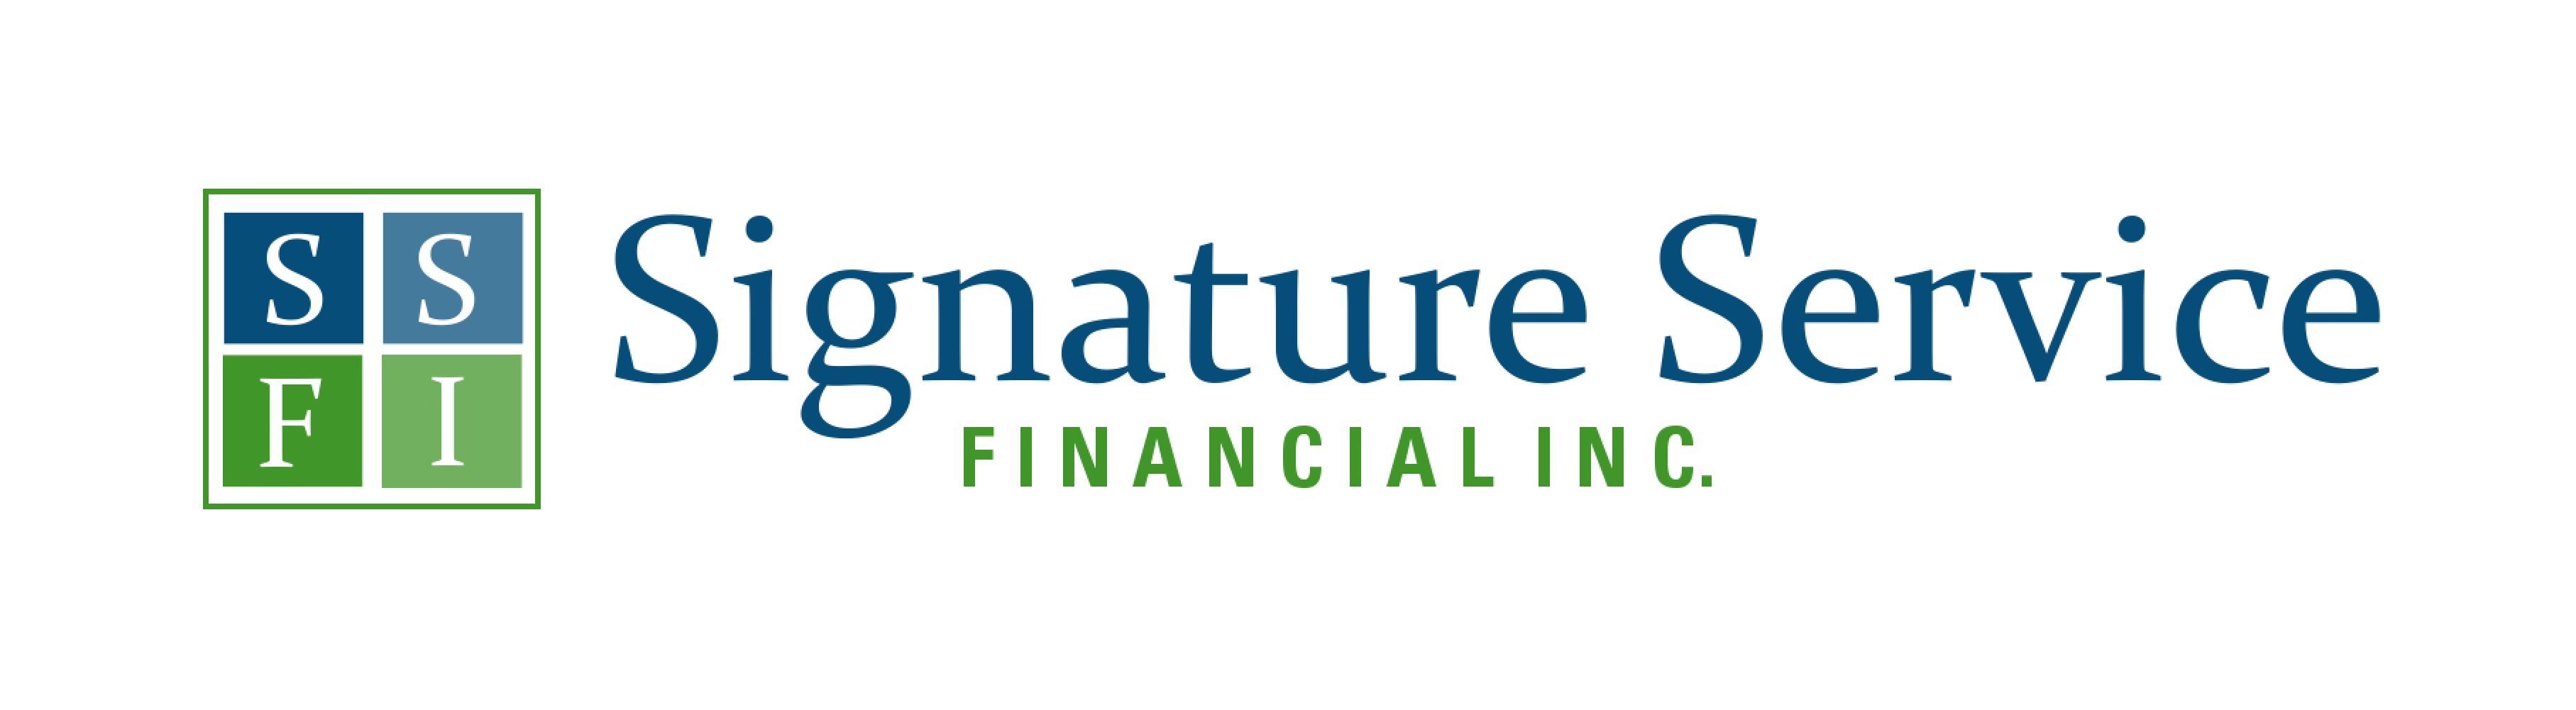 Signature Service Financial Inc.